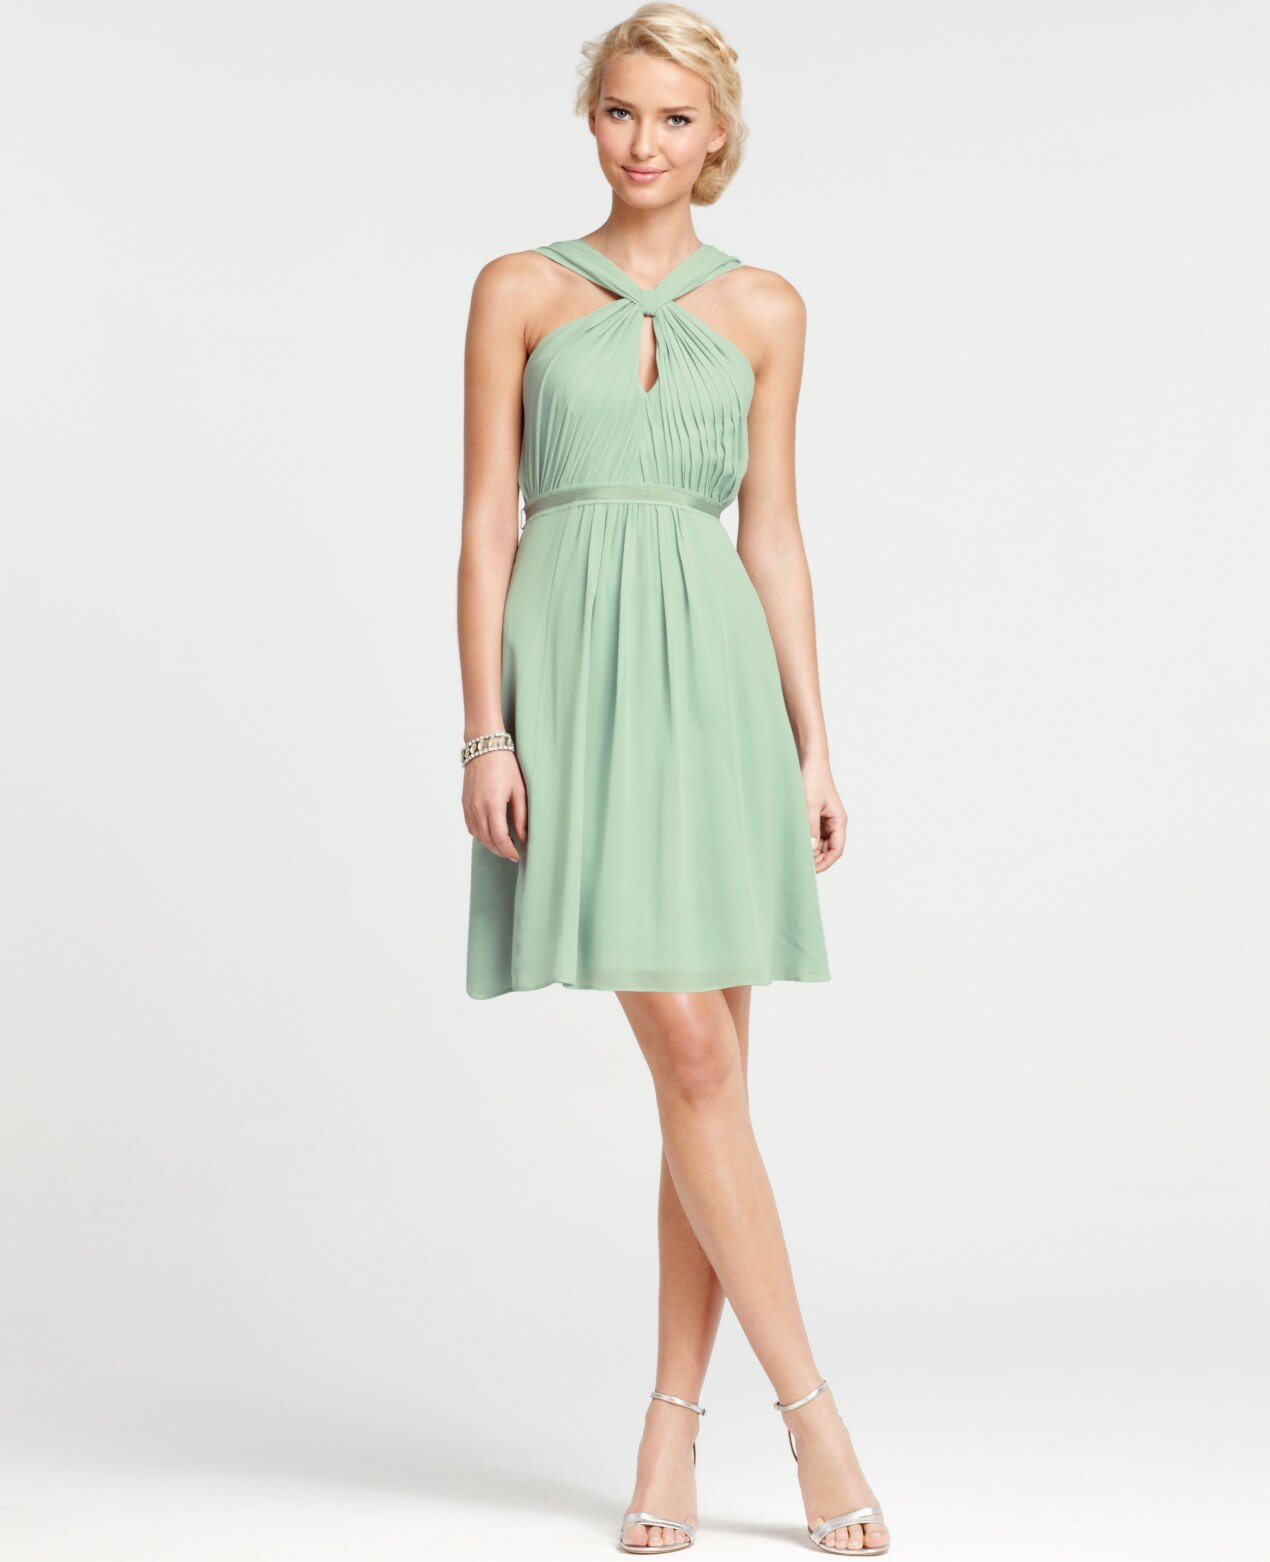 Ann Taylor wedding bridesmaid dresses Photo - 6